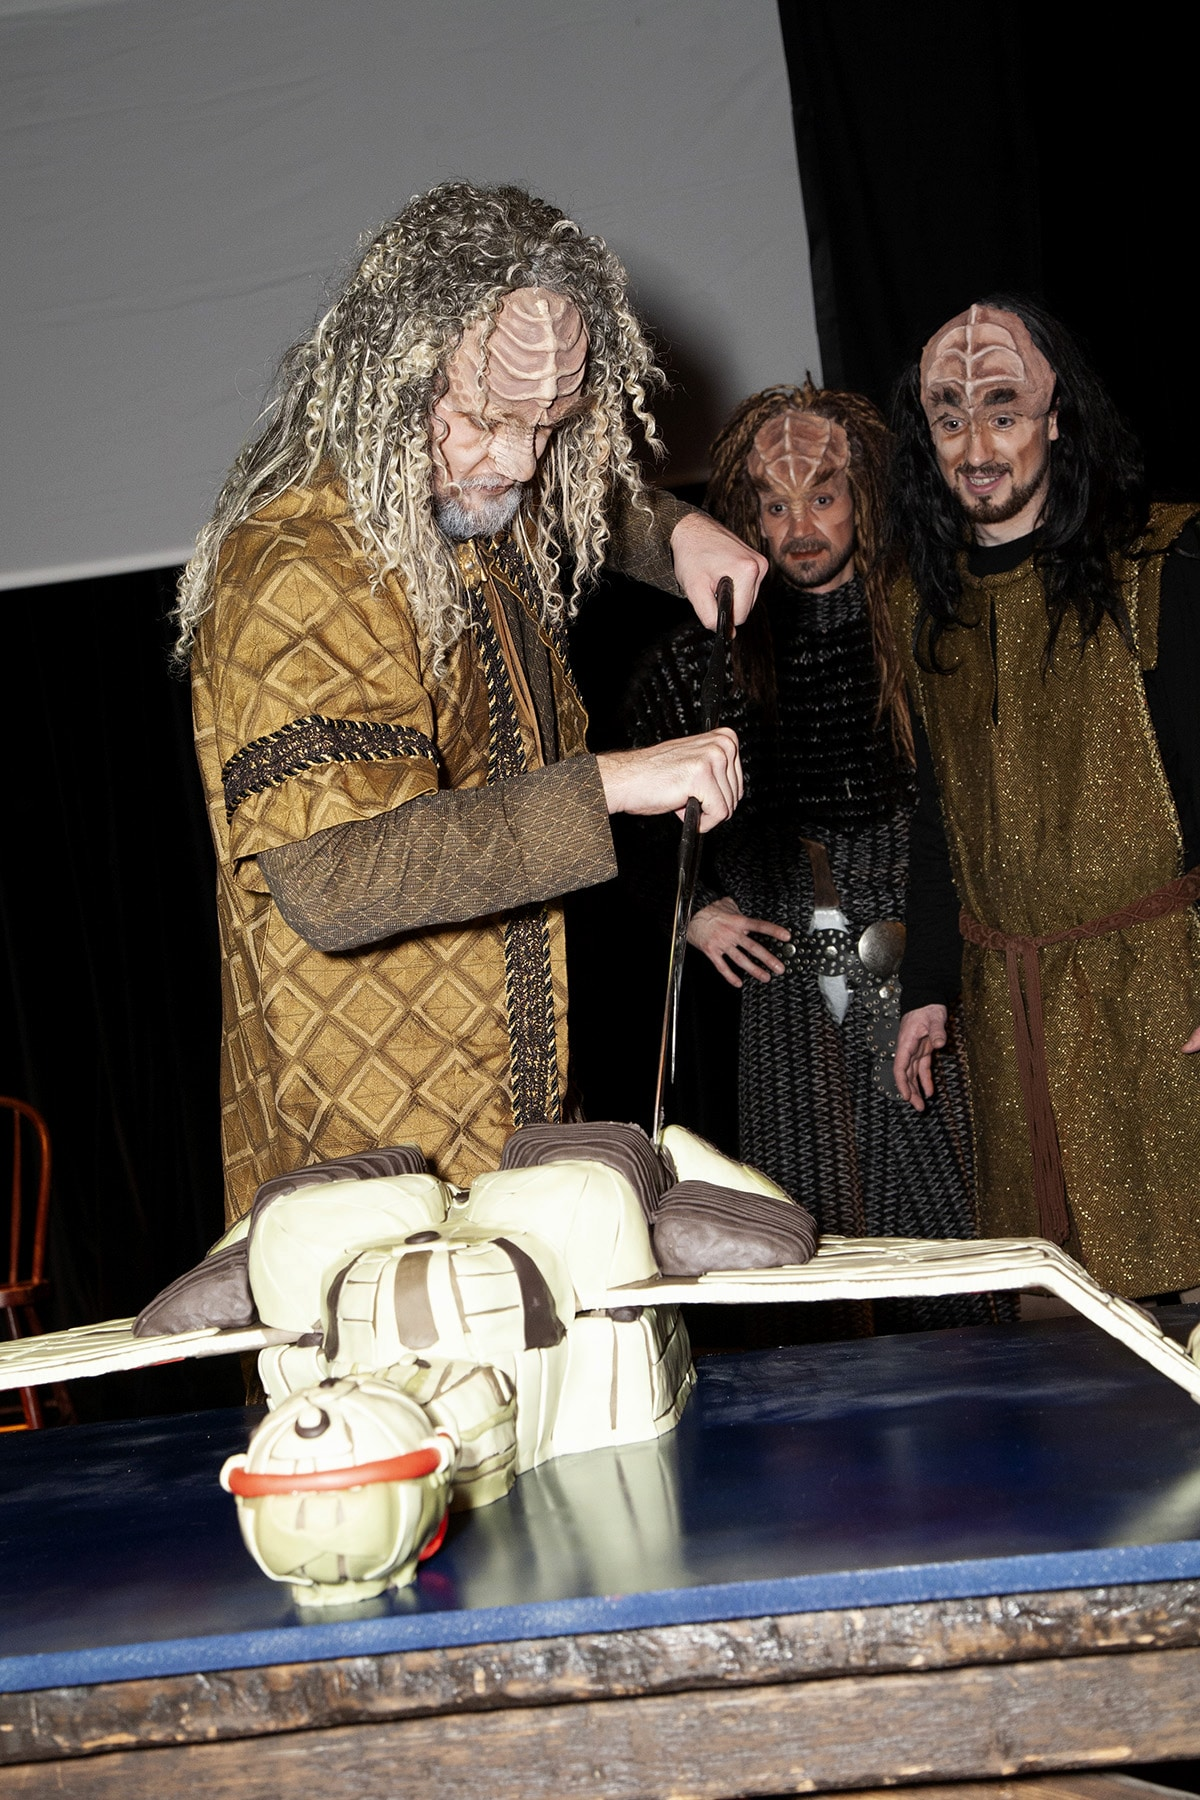 A group of Klingons gathered around a table. on the table is the Klingon ship cake. One Klingon uses his Bat'leth to cut the cake.